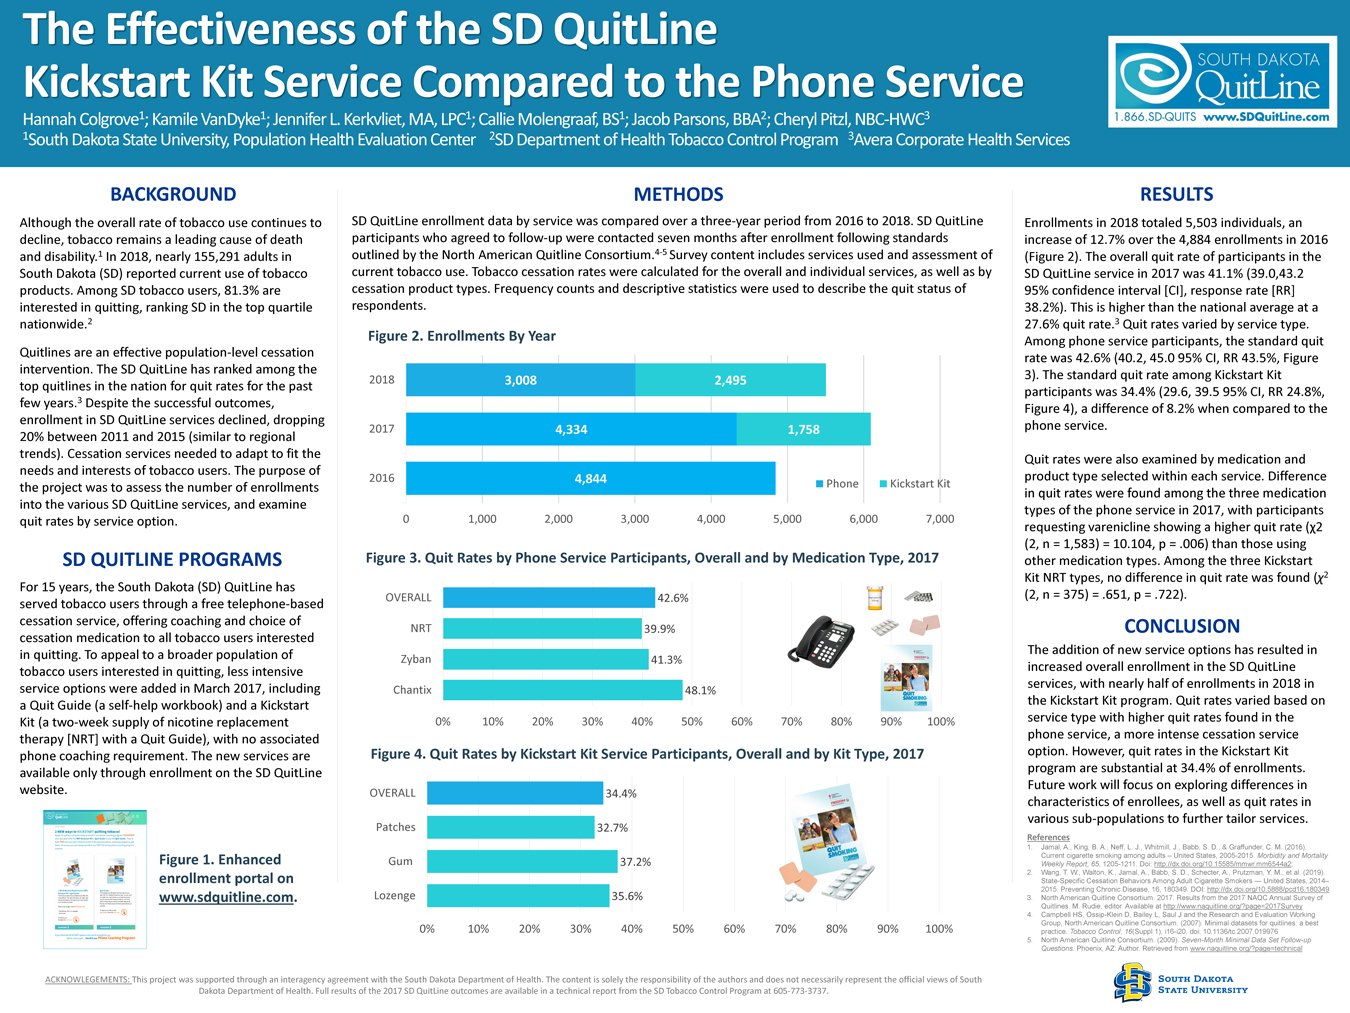 The Effectiveness of the SD Quit Line Kickstart Kit Service Compared to the Phone Service